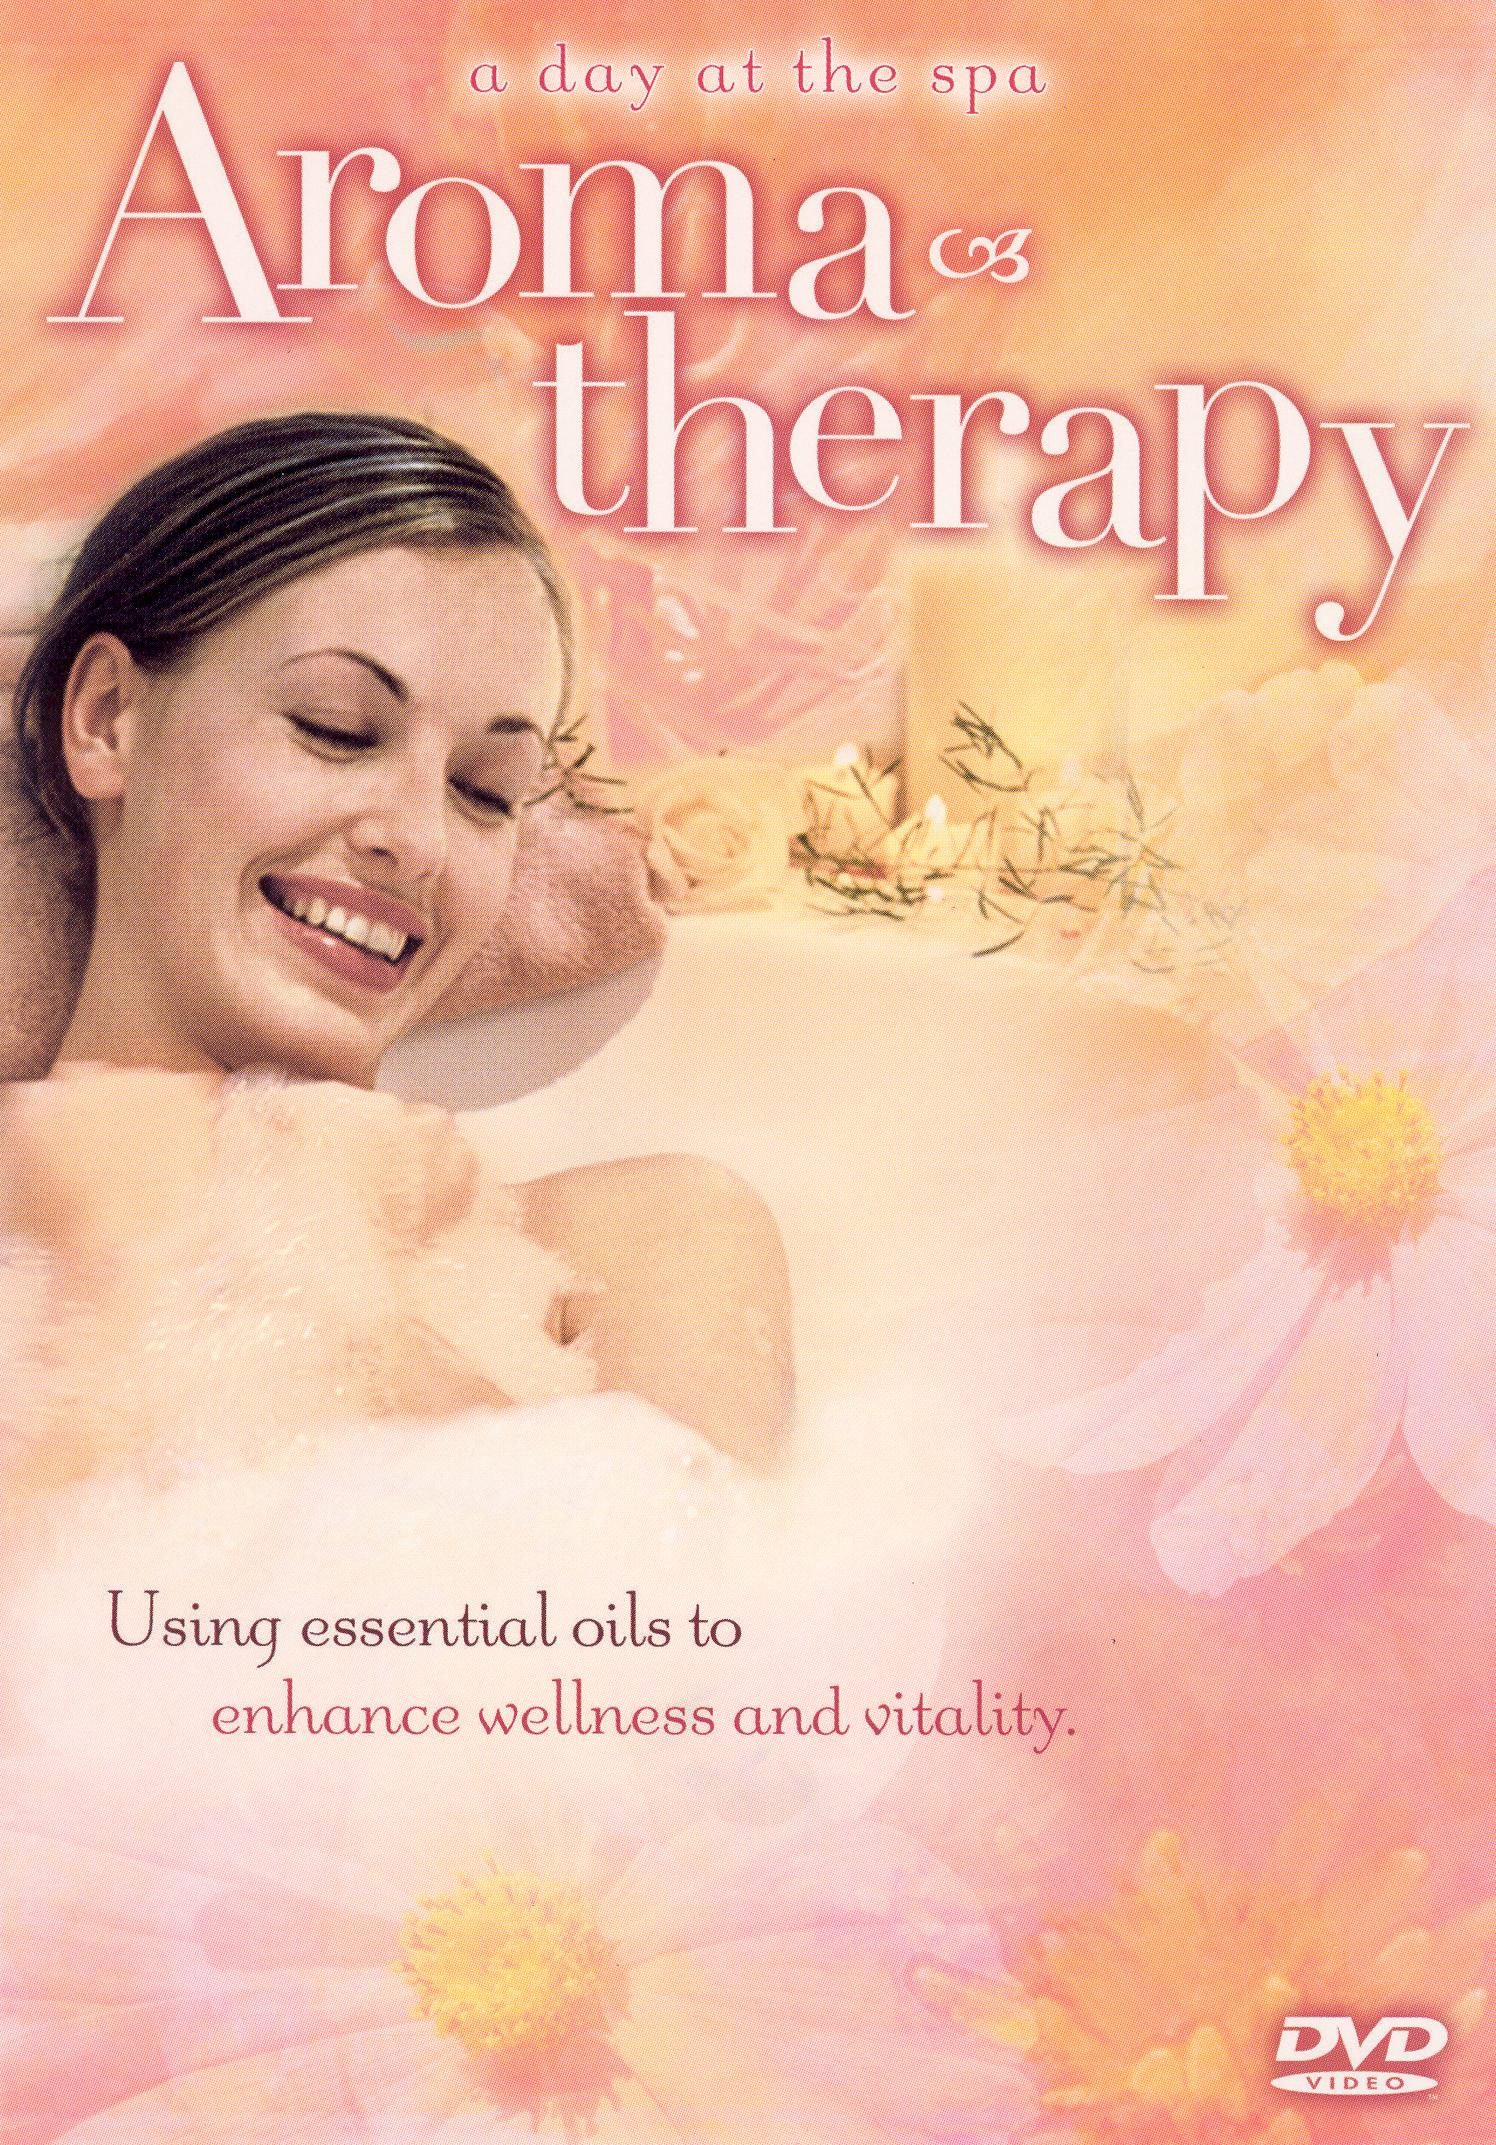 A Day at the Spa: Aromatherapy